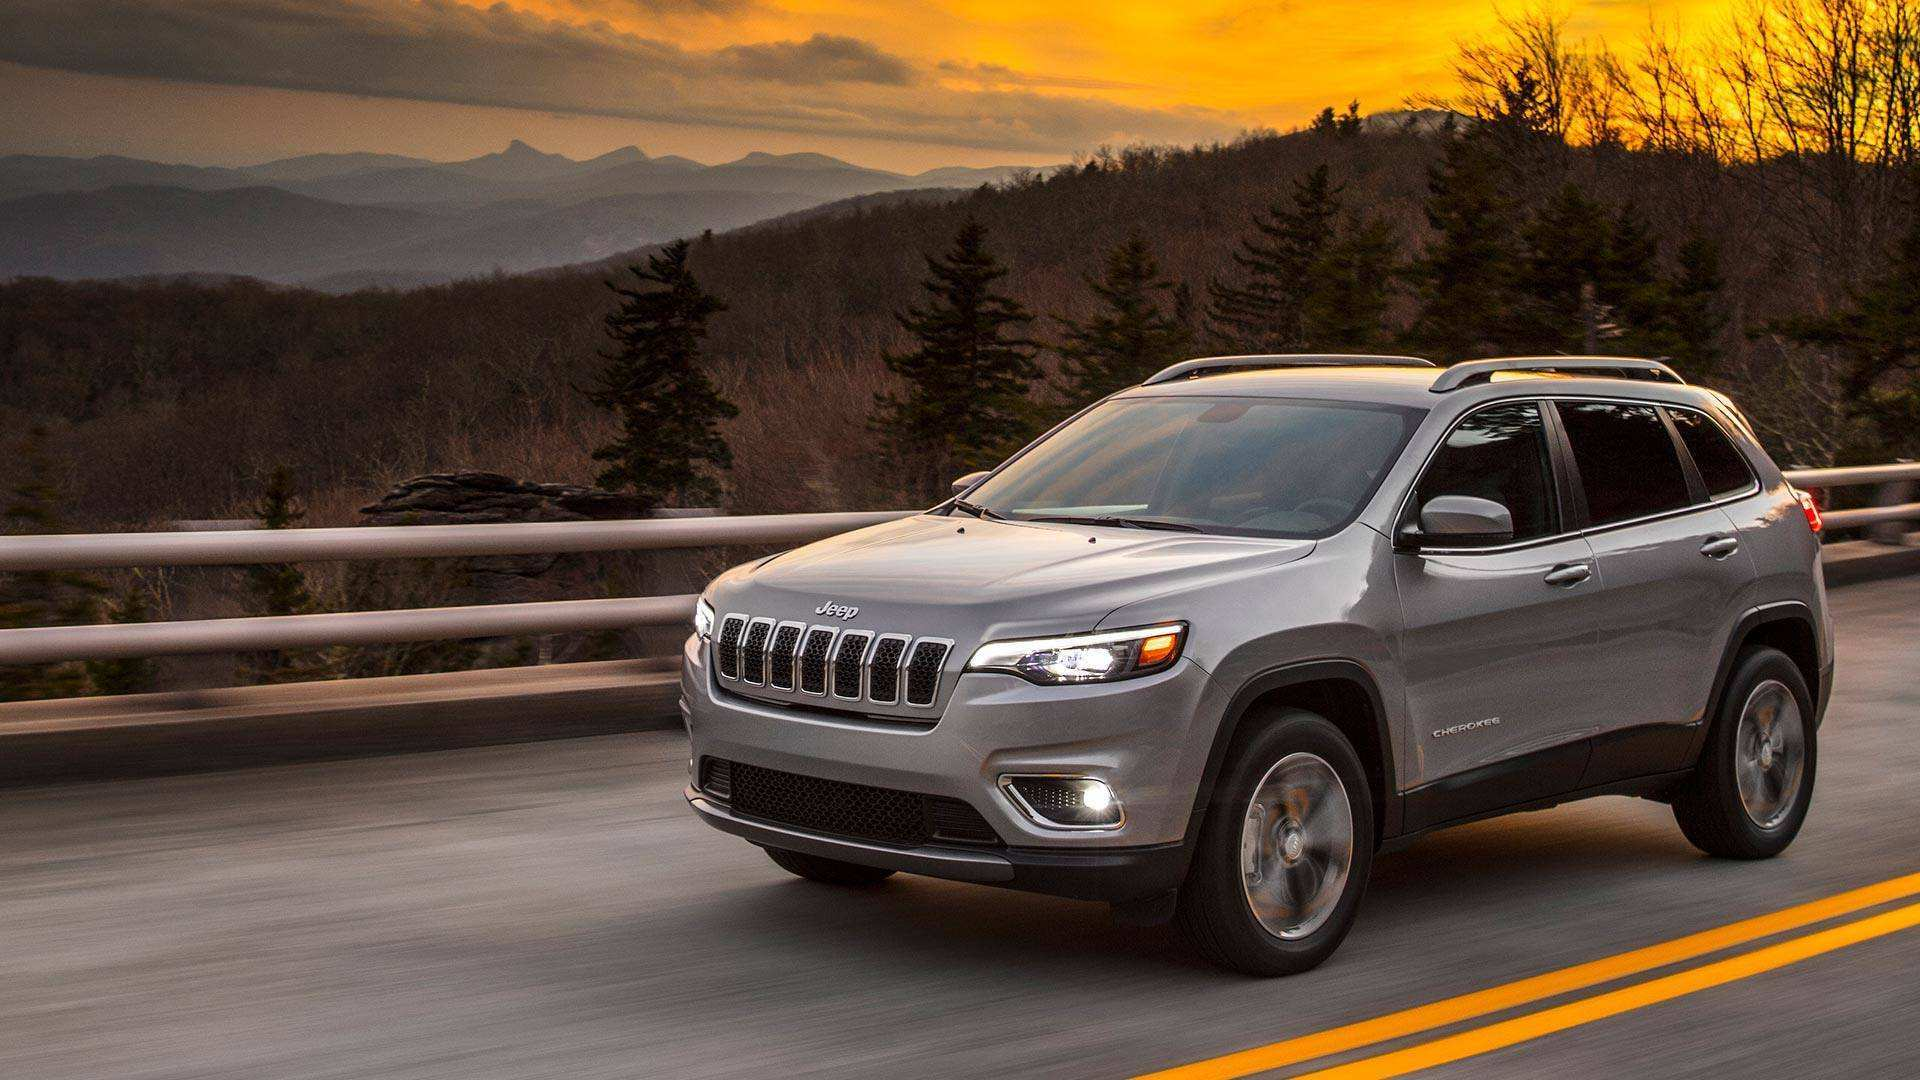 59 The Best 2019 Jeep Cherokee Performance